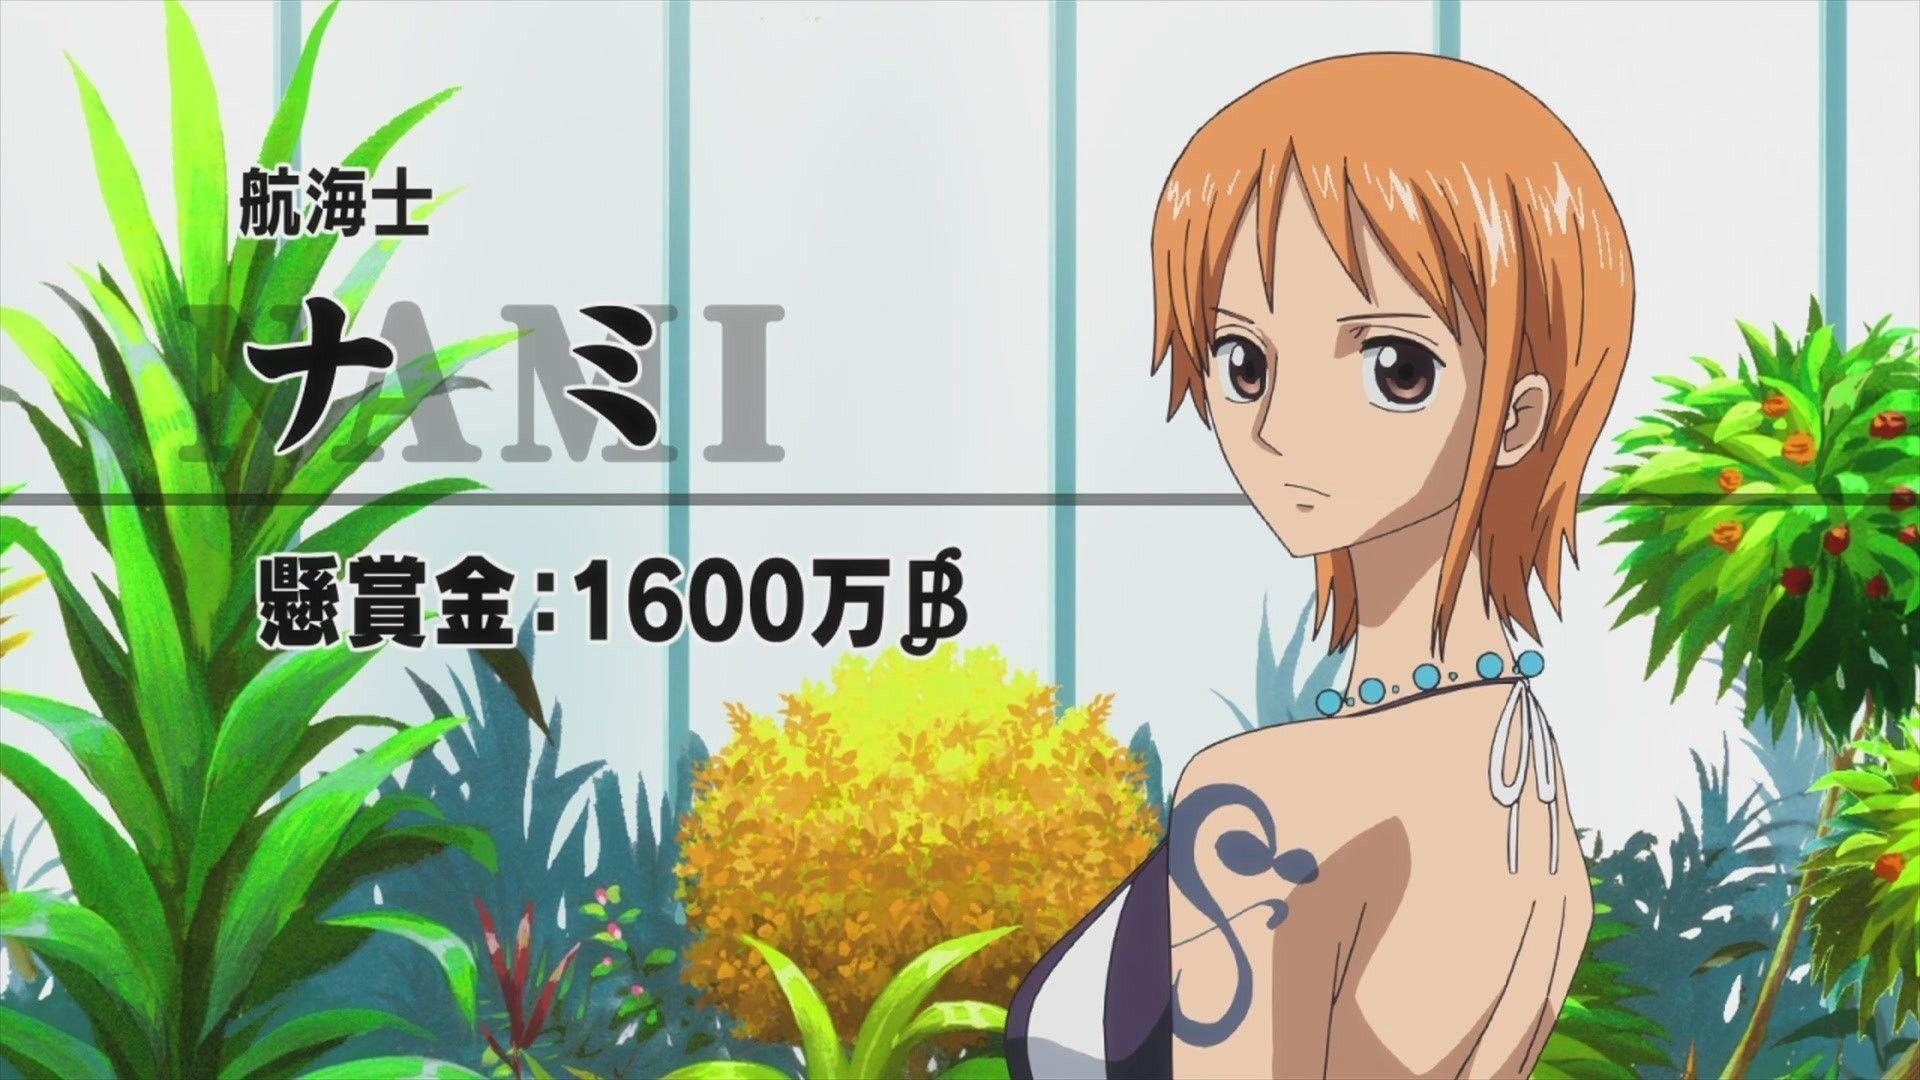 wallpapers one piece 2015 nami and law wallpaper cave